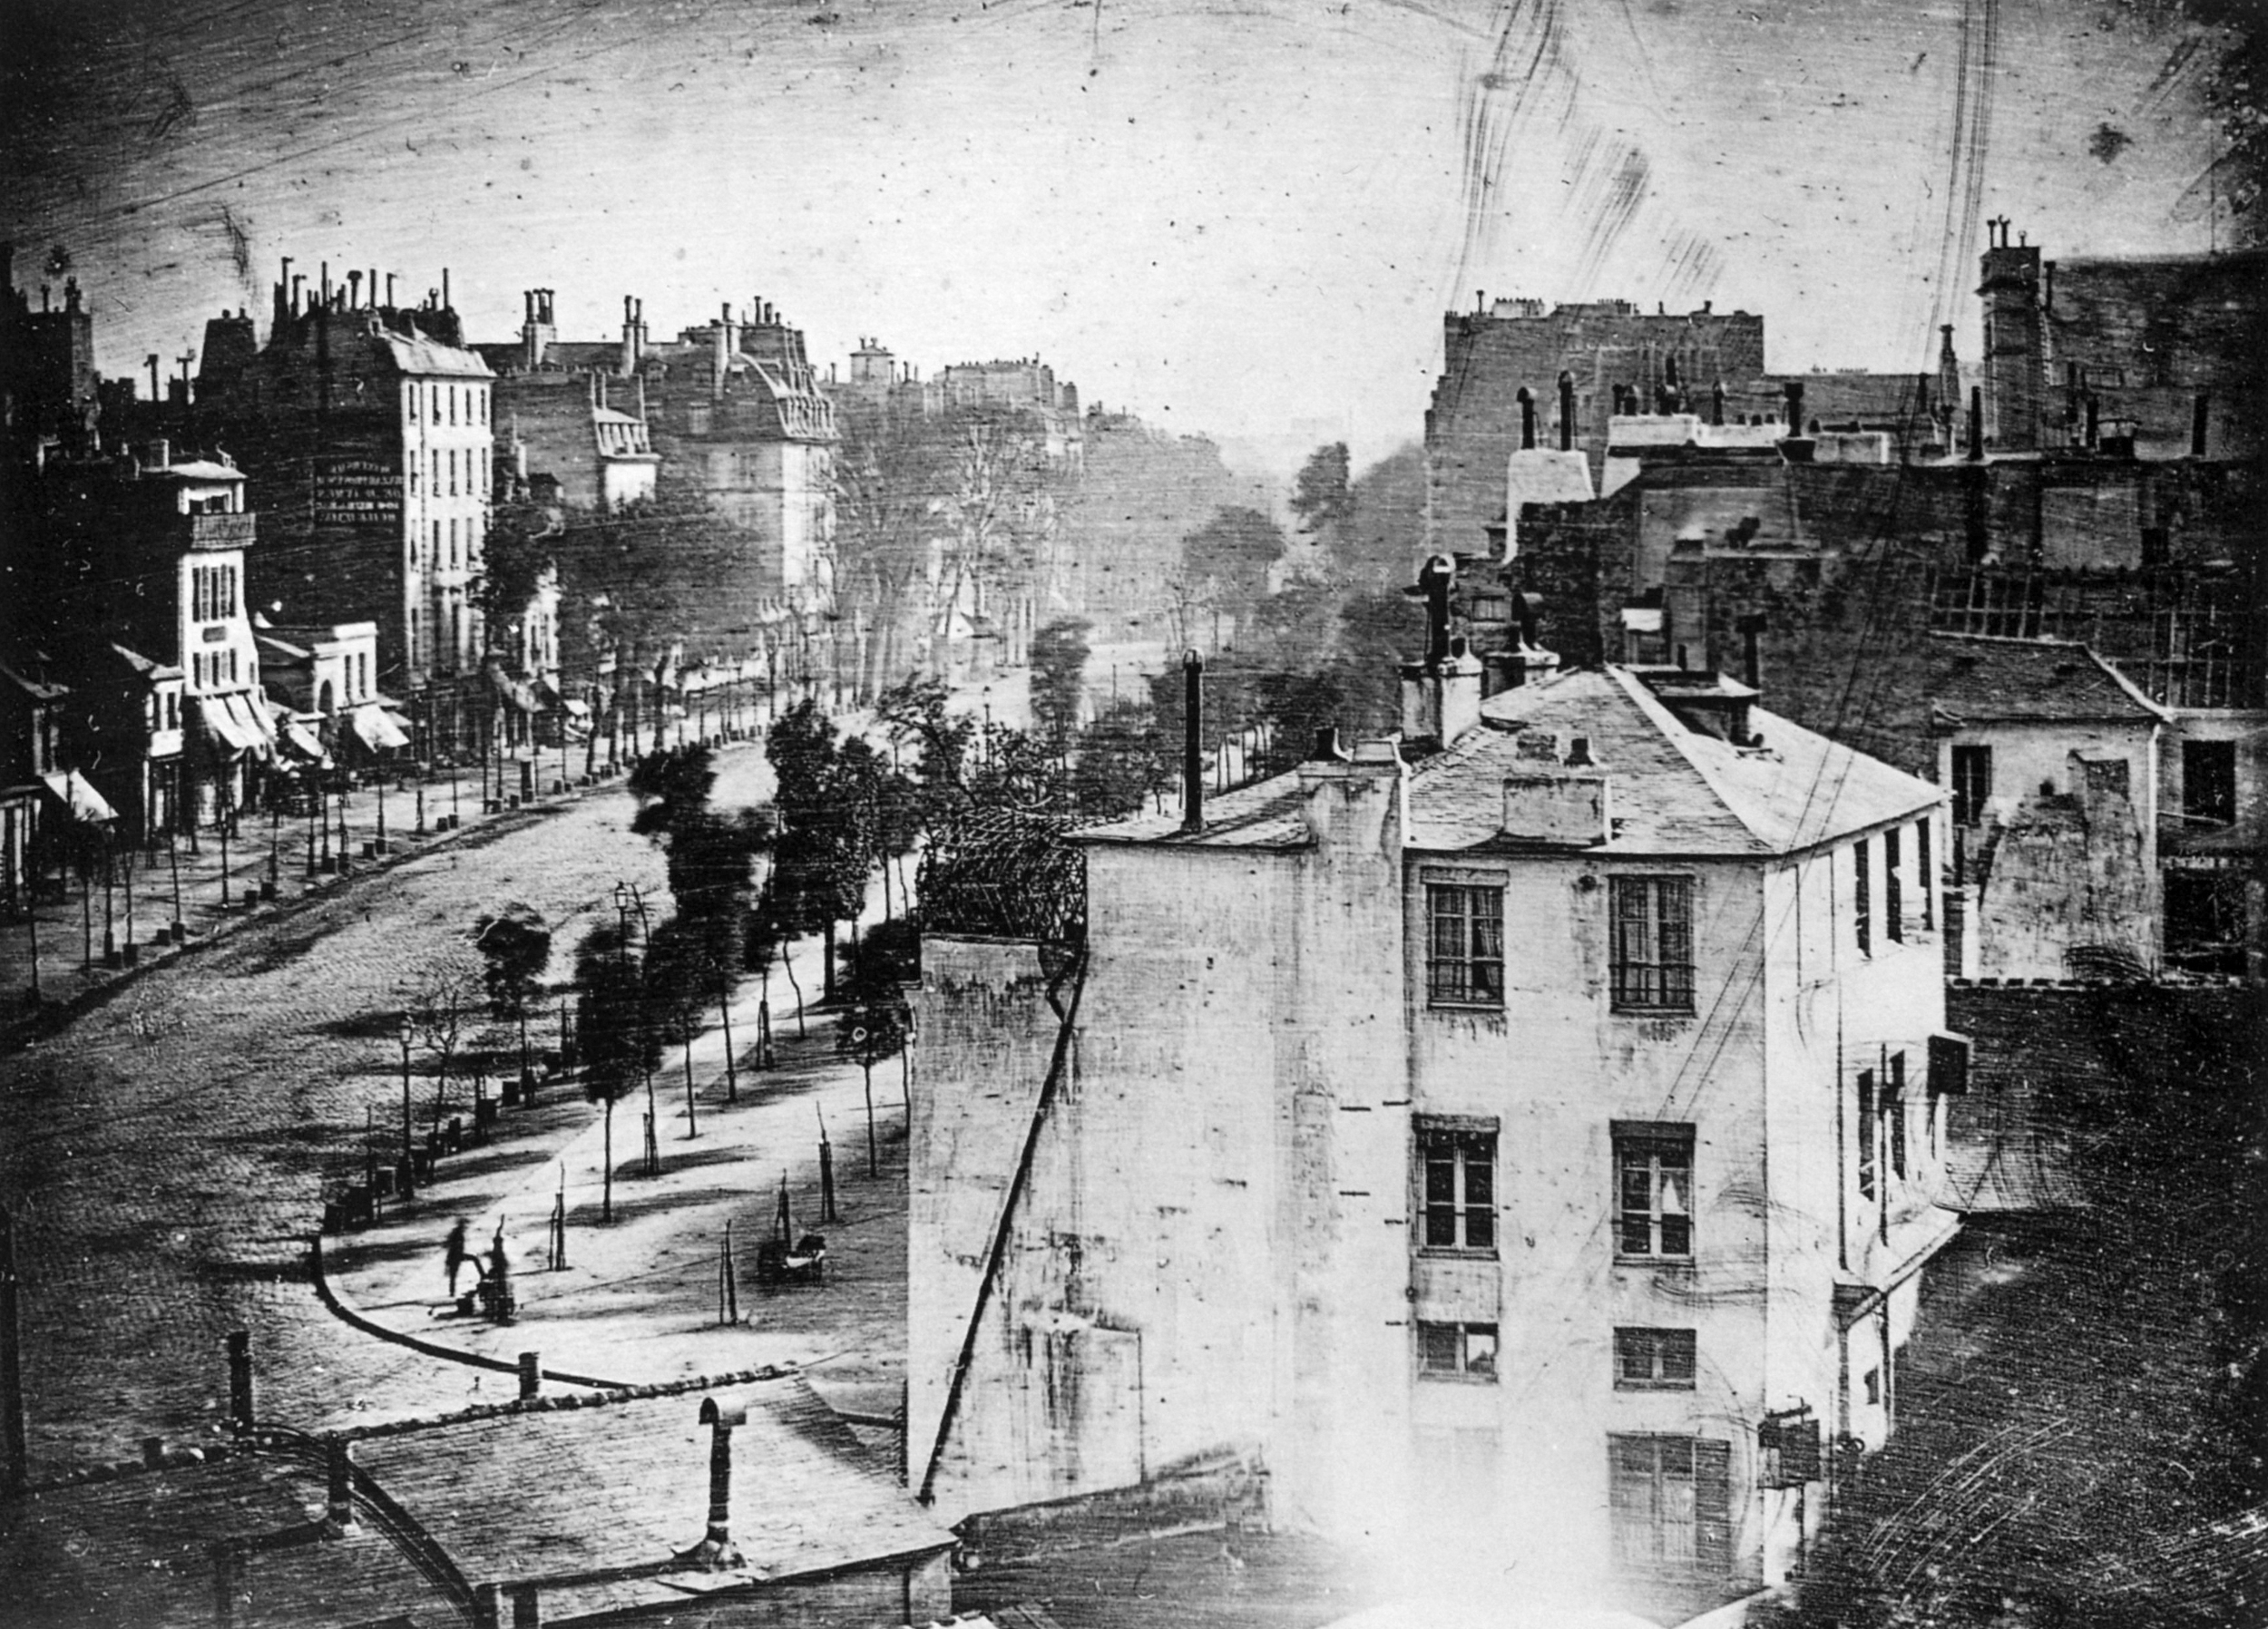 1838 Louis Daguerre first known photograph of a human